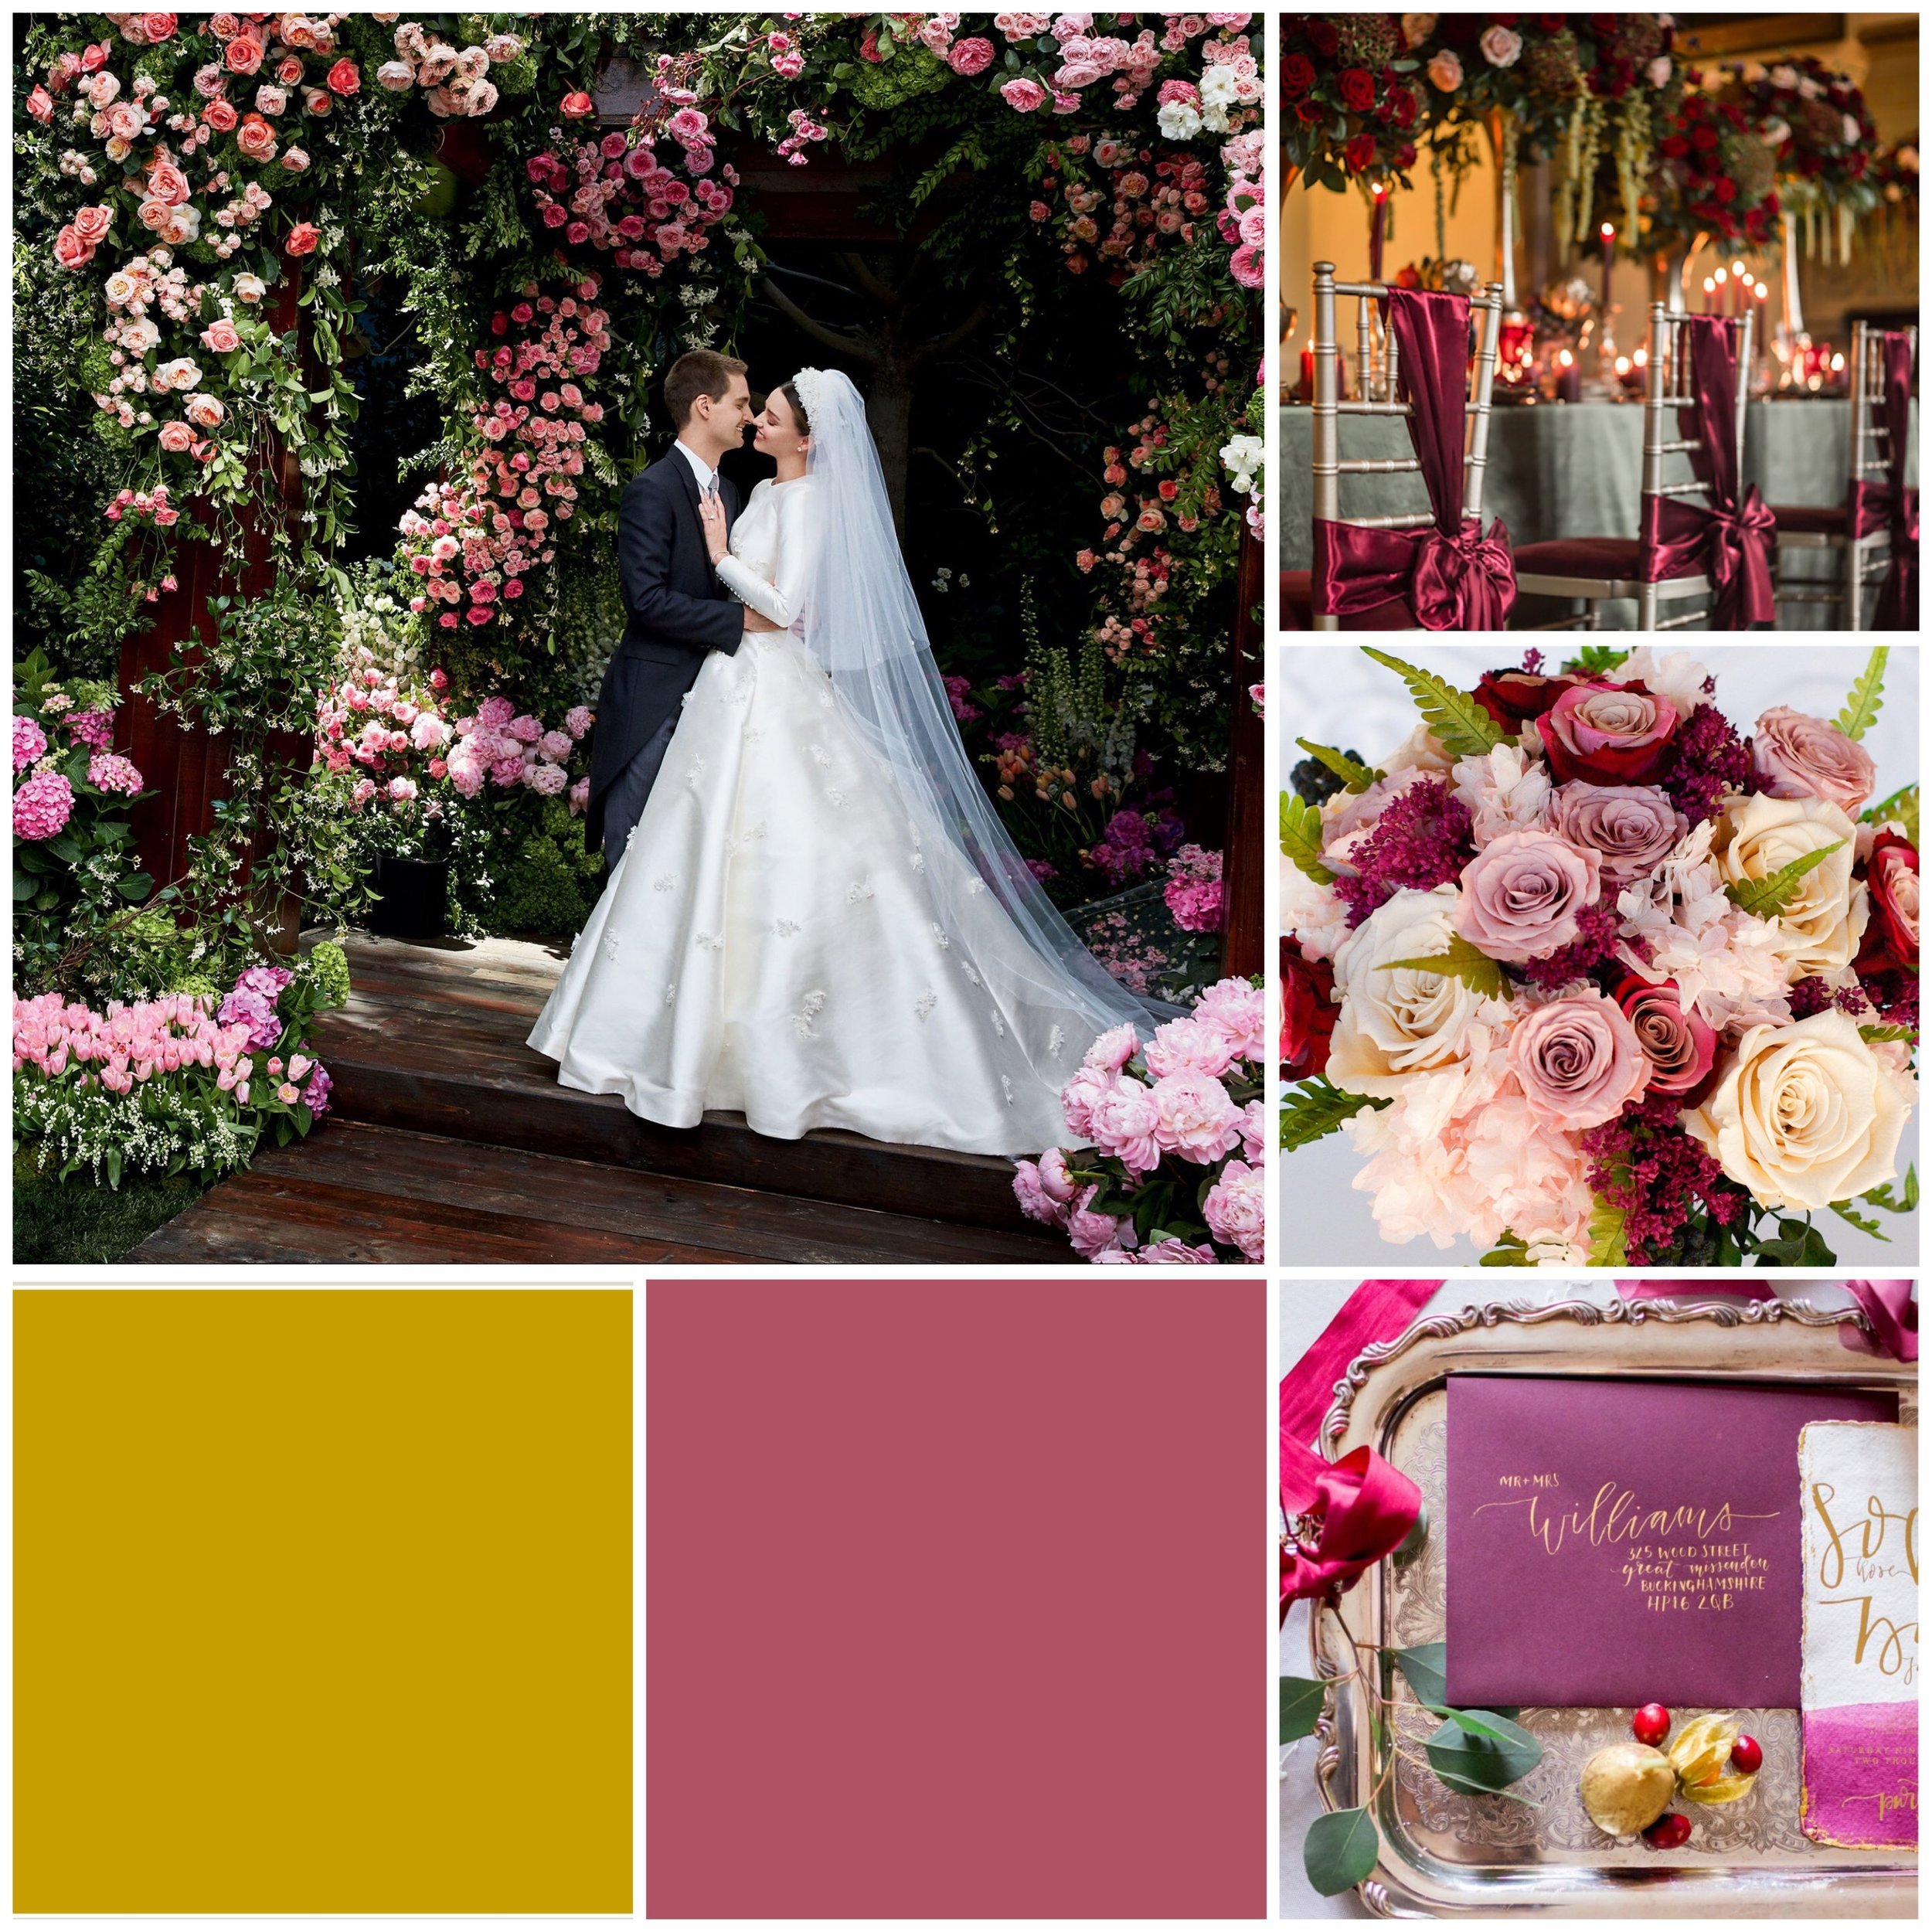 Baroque Rose & Gold Moodboard for your wedding inspiration.